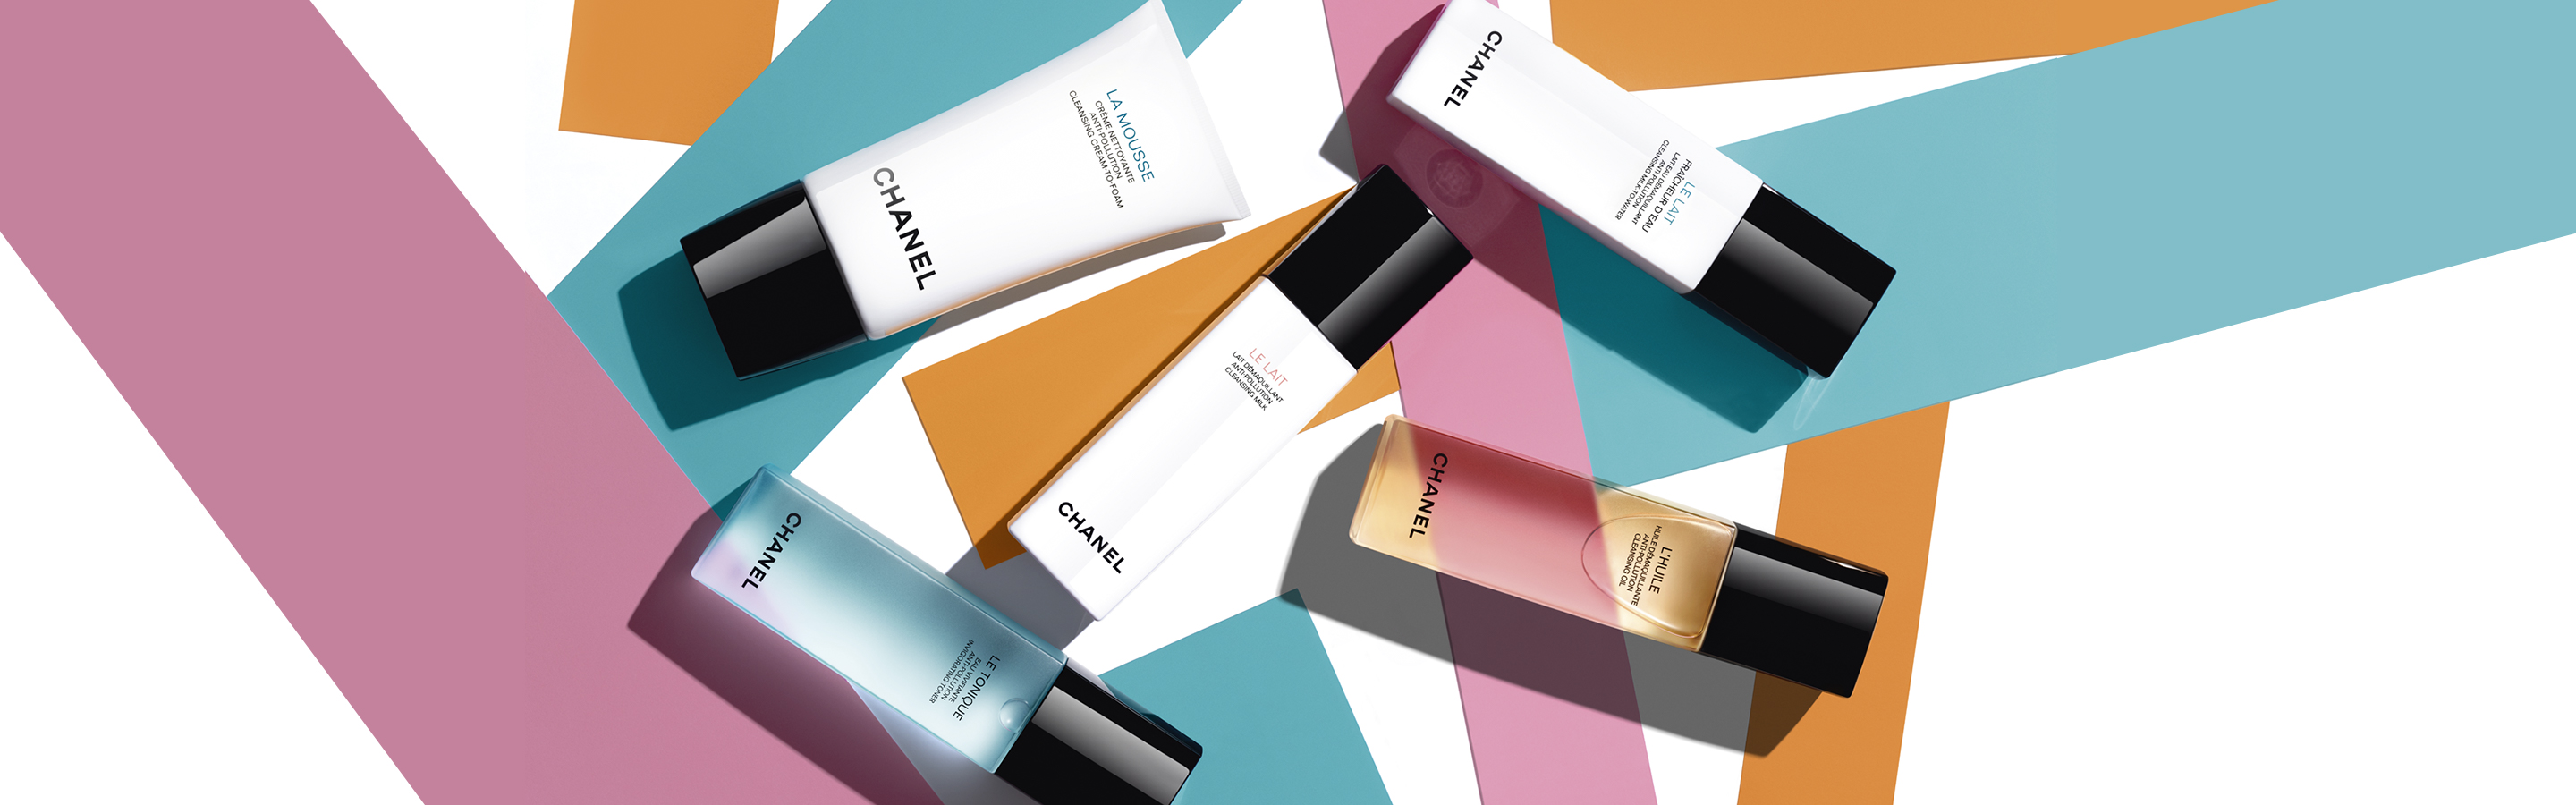 Cleansers - Skin & Face Cleansers | Official Website | CHANEL